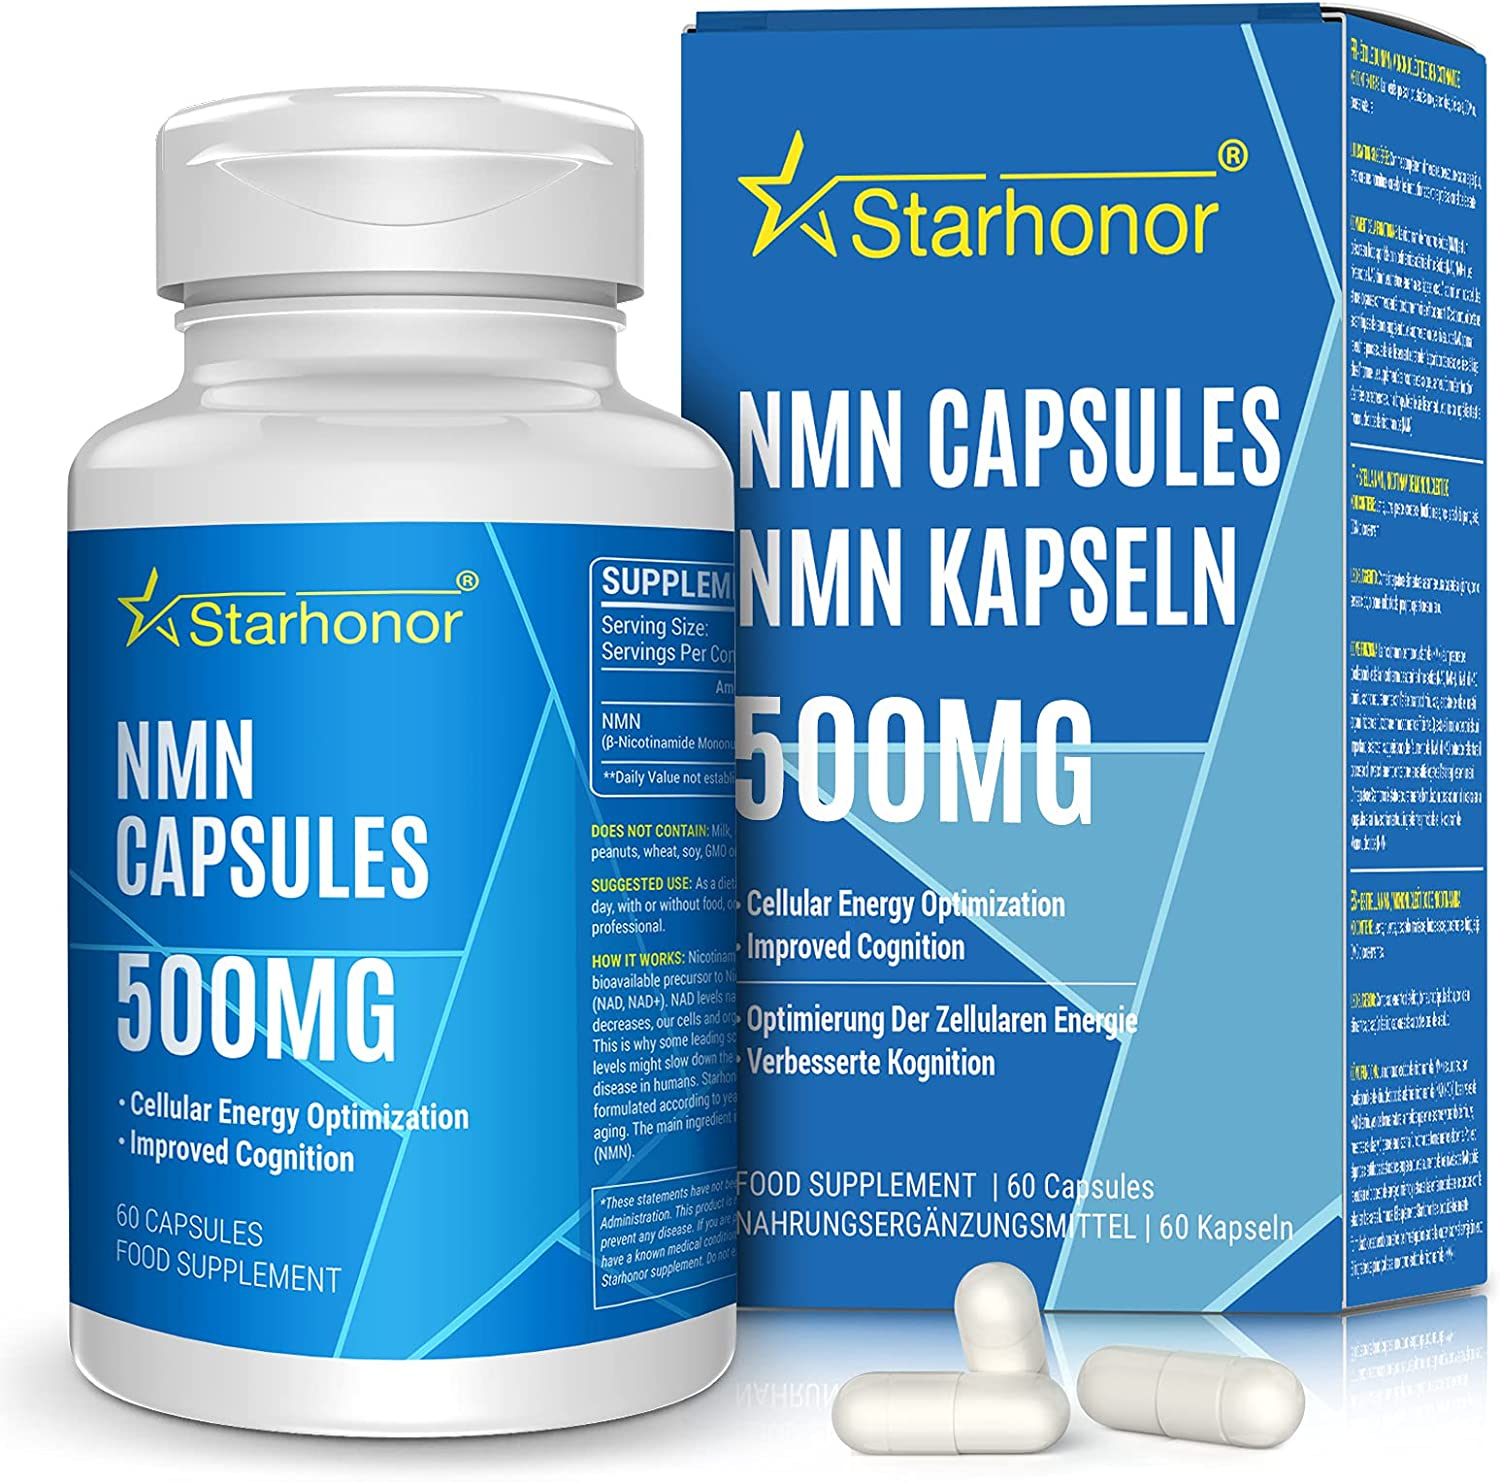 NMN Supplements Max 61% OFF Large-scale sale 500mg Capsule Monon Nicotinamide Starhonor Pure